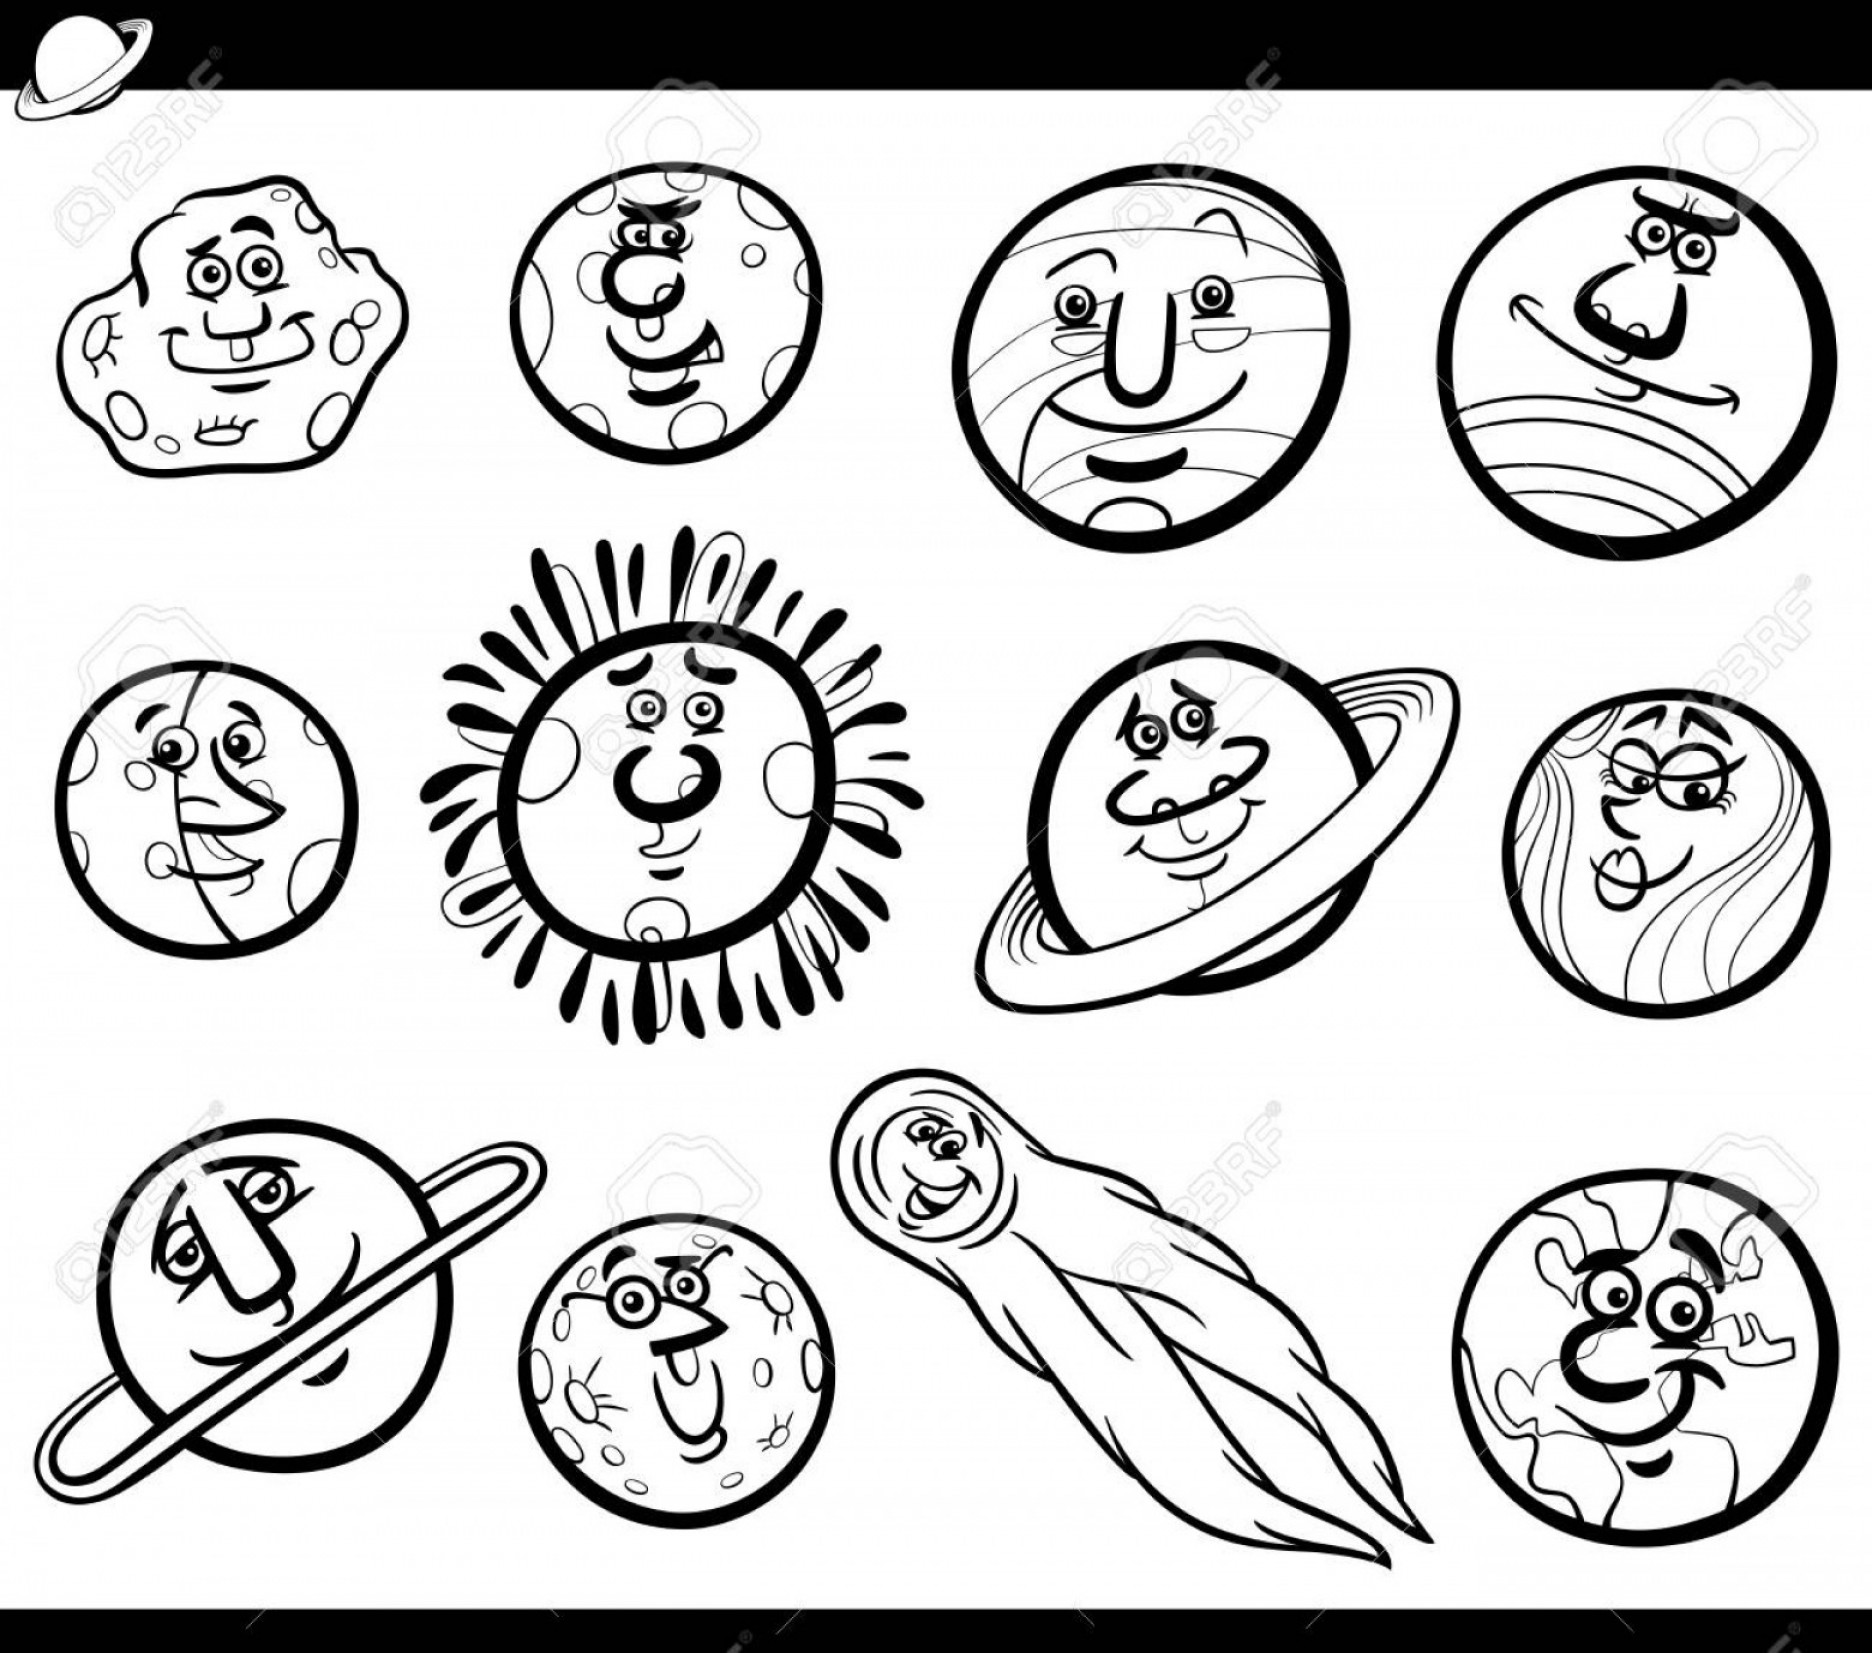 Funny Black And White Vector: Photostock Vector Black And White Cartoon Illustration Of Funny Orbs And Planets From Solar System Space Comic Charact